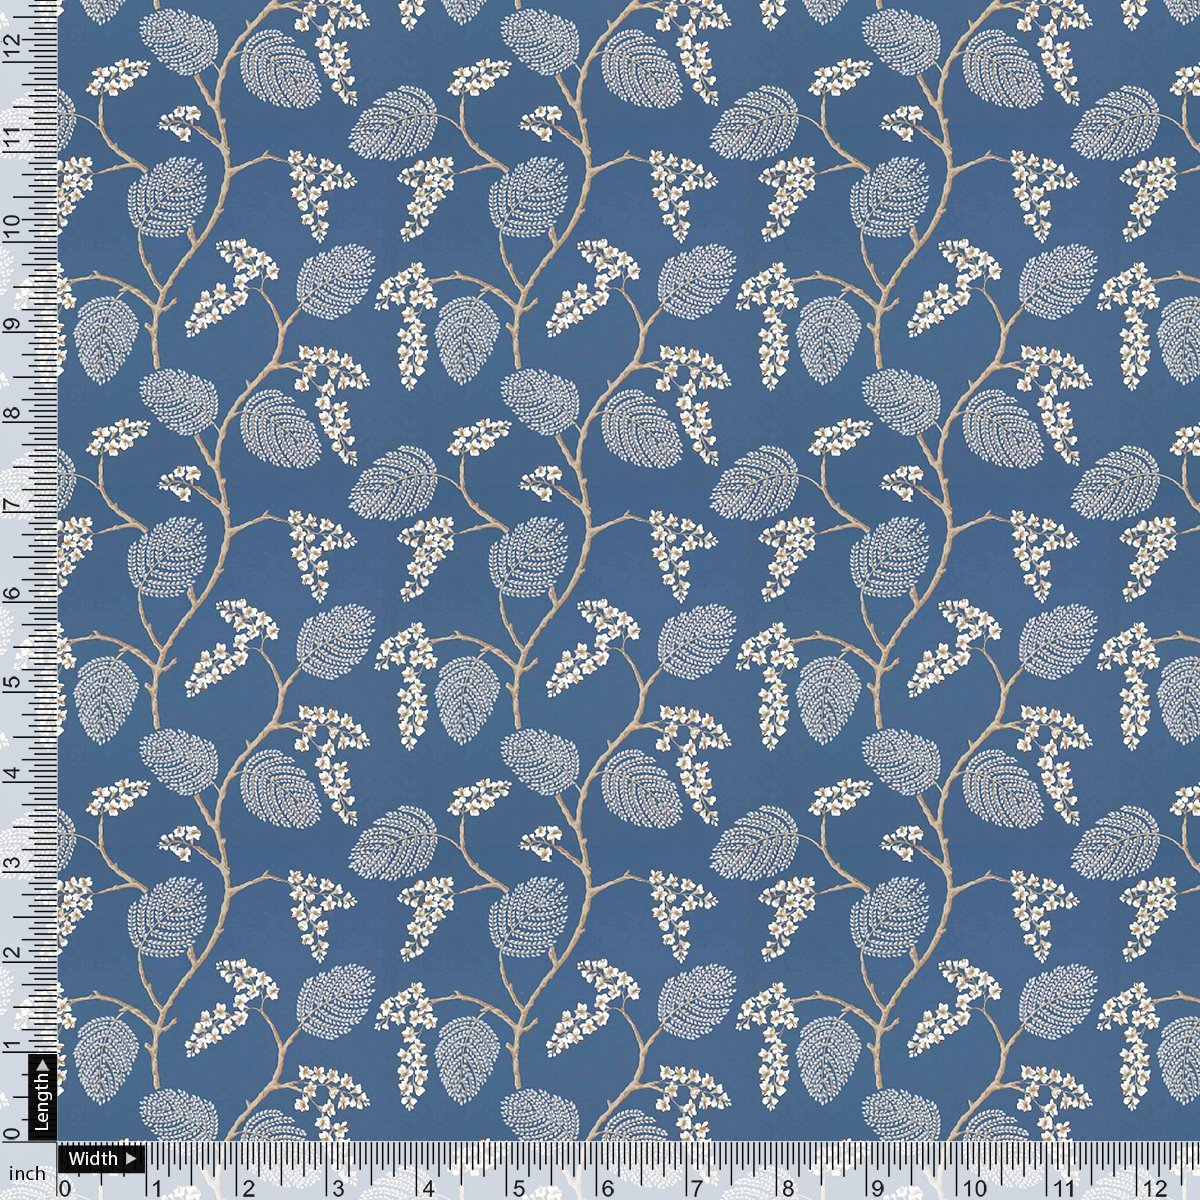 White Jasud Flower With Stalk Digital Printed Fabric - Pure Cotton - FAB VOGUE Studio